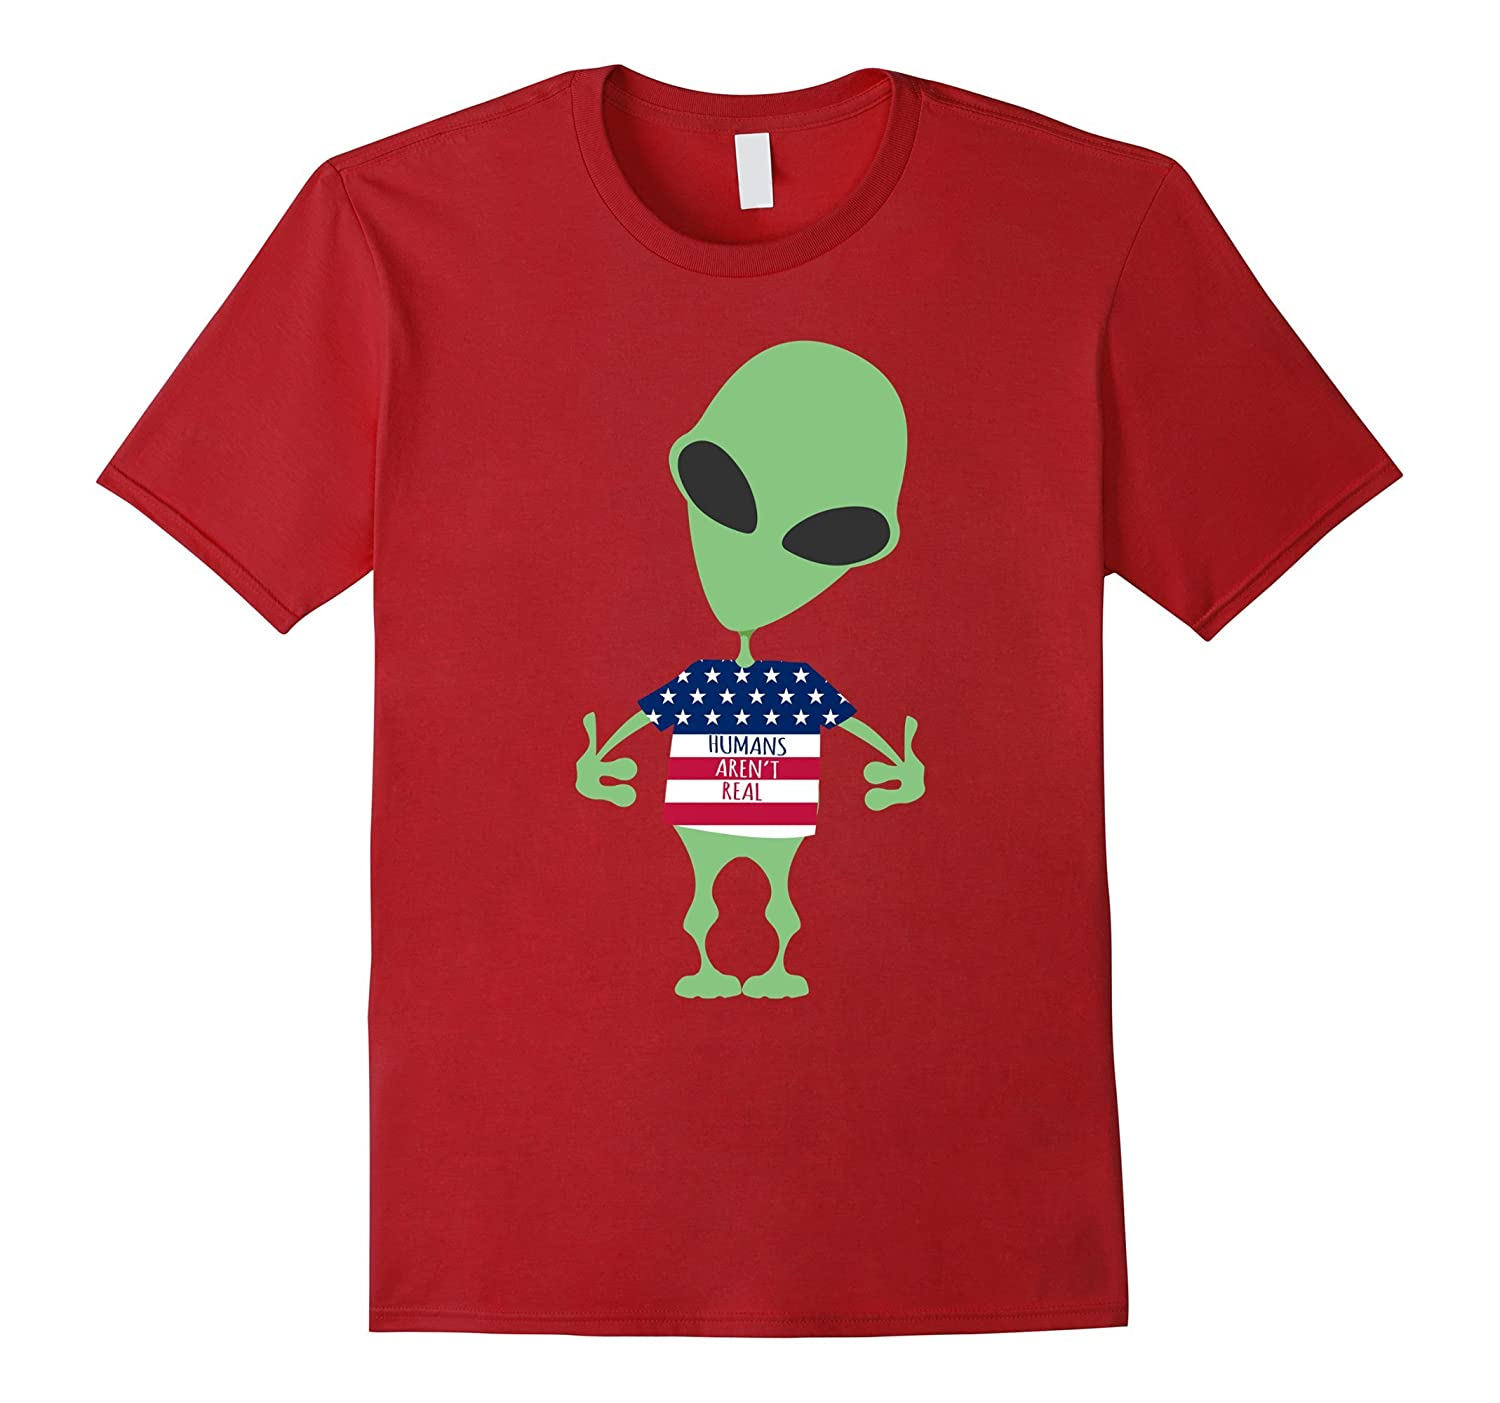 99a2375102 Alien Funny Tee Humans Aren't Real Cute 4th Of July UFO Gift-TH ...